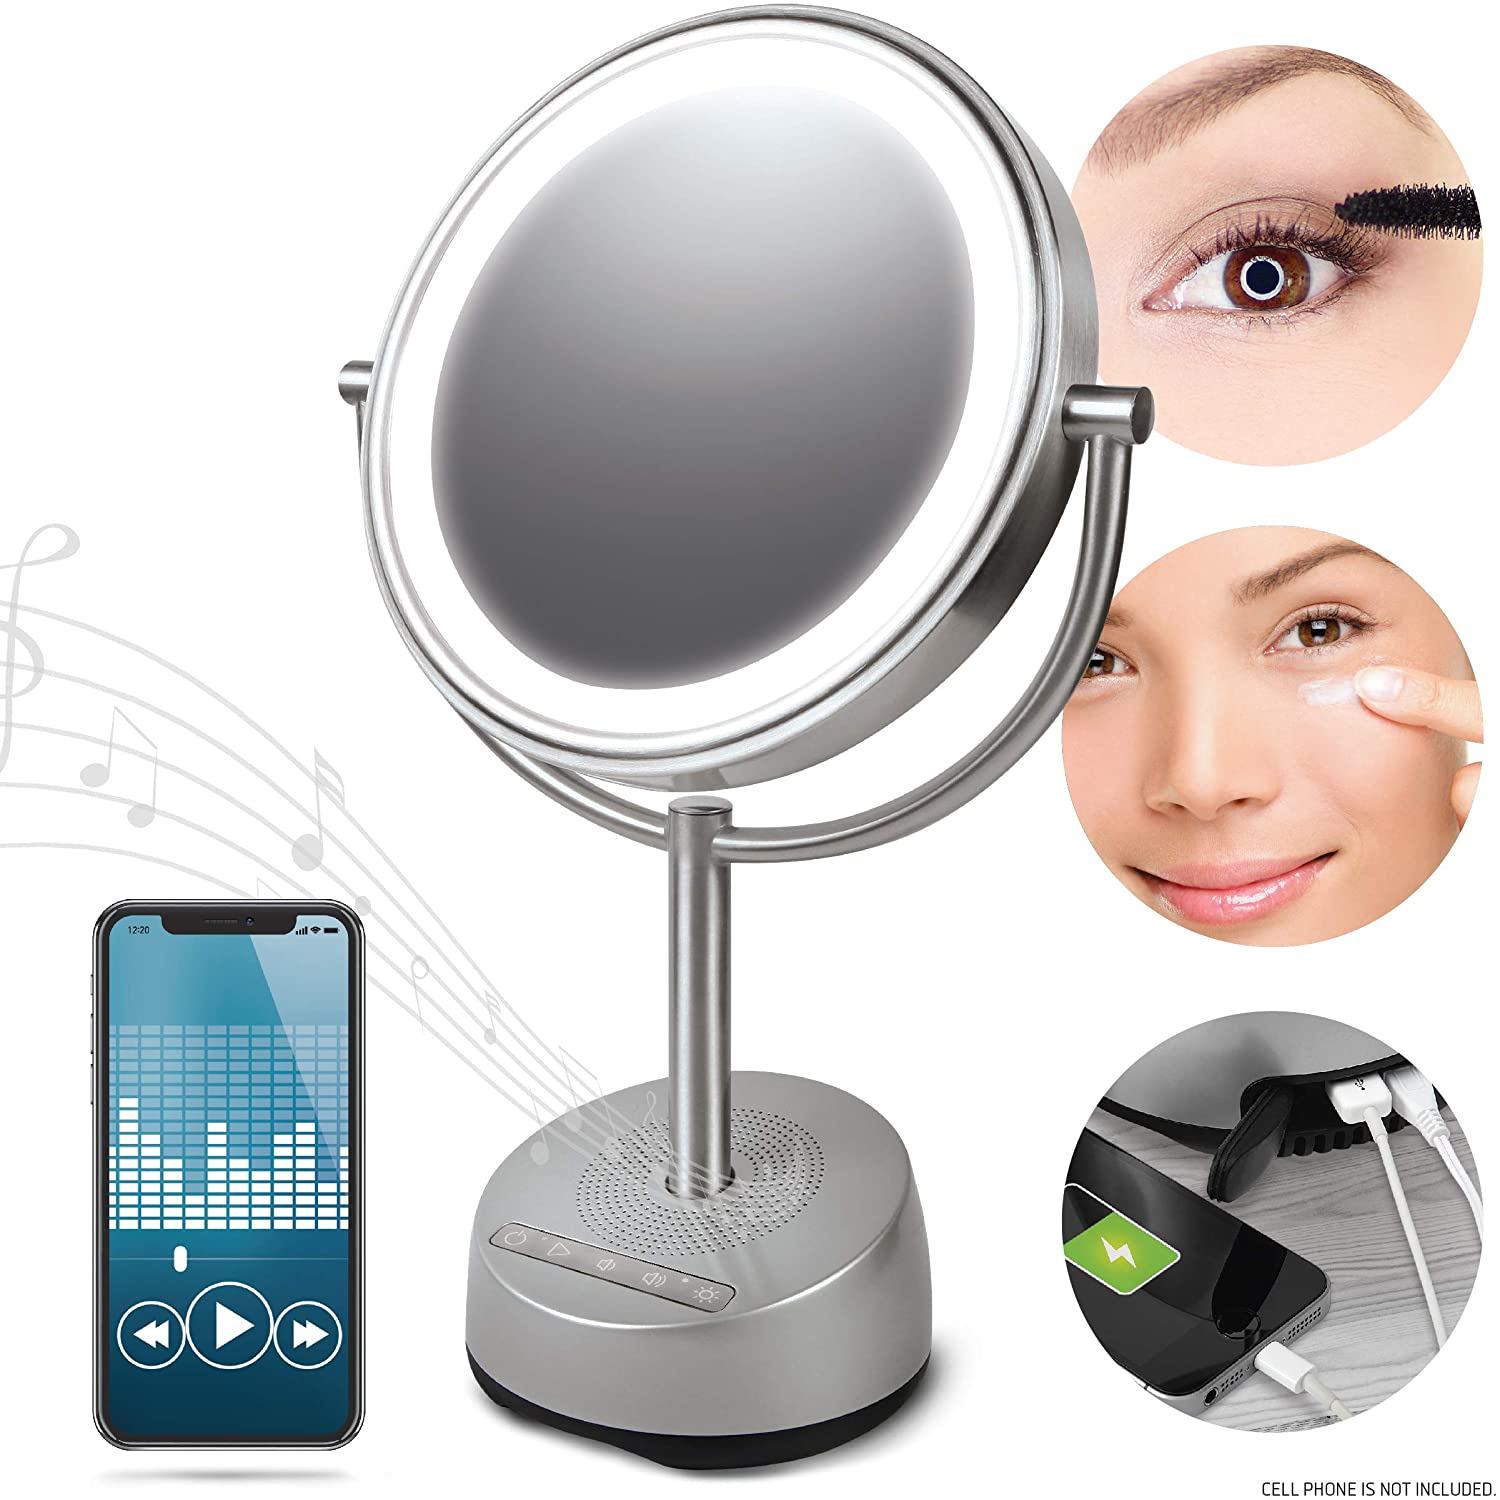 SHARPER IMAGE Bluetooth Vanity Makeup Mirror with Wireless Music Streaming and LED Light, Double-Sided 7x/1x Magnification, Phone Charging Port, Smartphone Compatible with Voice Activation